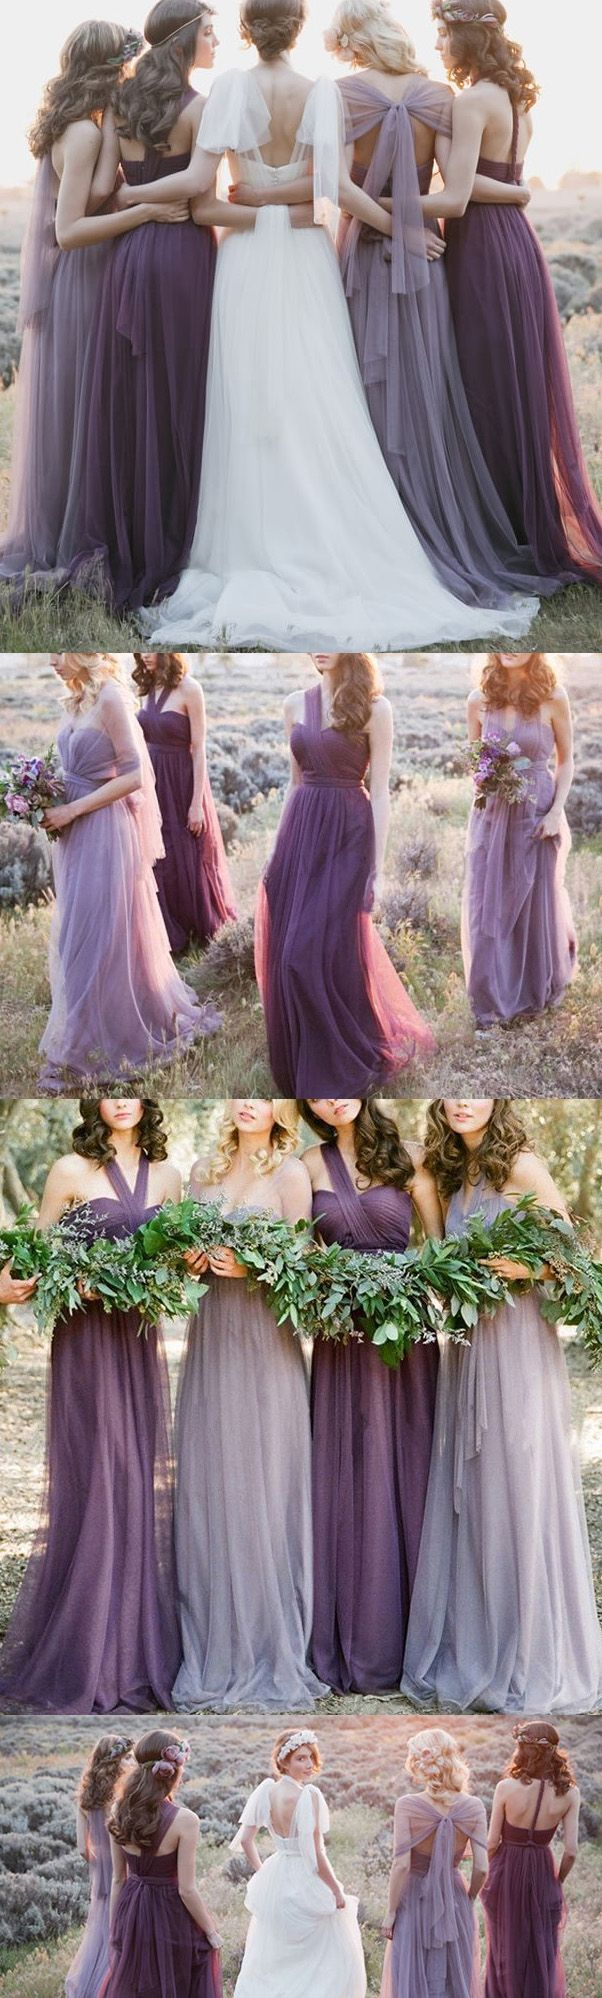 Bridesmaid Dresses Purple, Discount Bridesmaid Dresses, Long Purple Bridesmaid Dresses, Long Bridesmaid Dresses, Purple Bridesmaid Dresses, A Line dresses, Floor Length Dresses, Long Purple dresses, Zipper Bridesmaid Dresses, Ruffles Bridesmaid Dresses, Floor-length Bridesmaid Dresses, A-line/Princess Bridesmaid Dresses